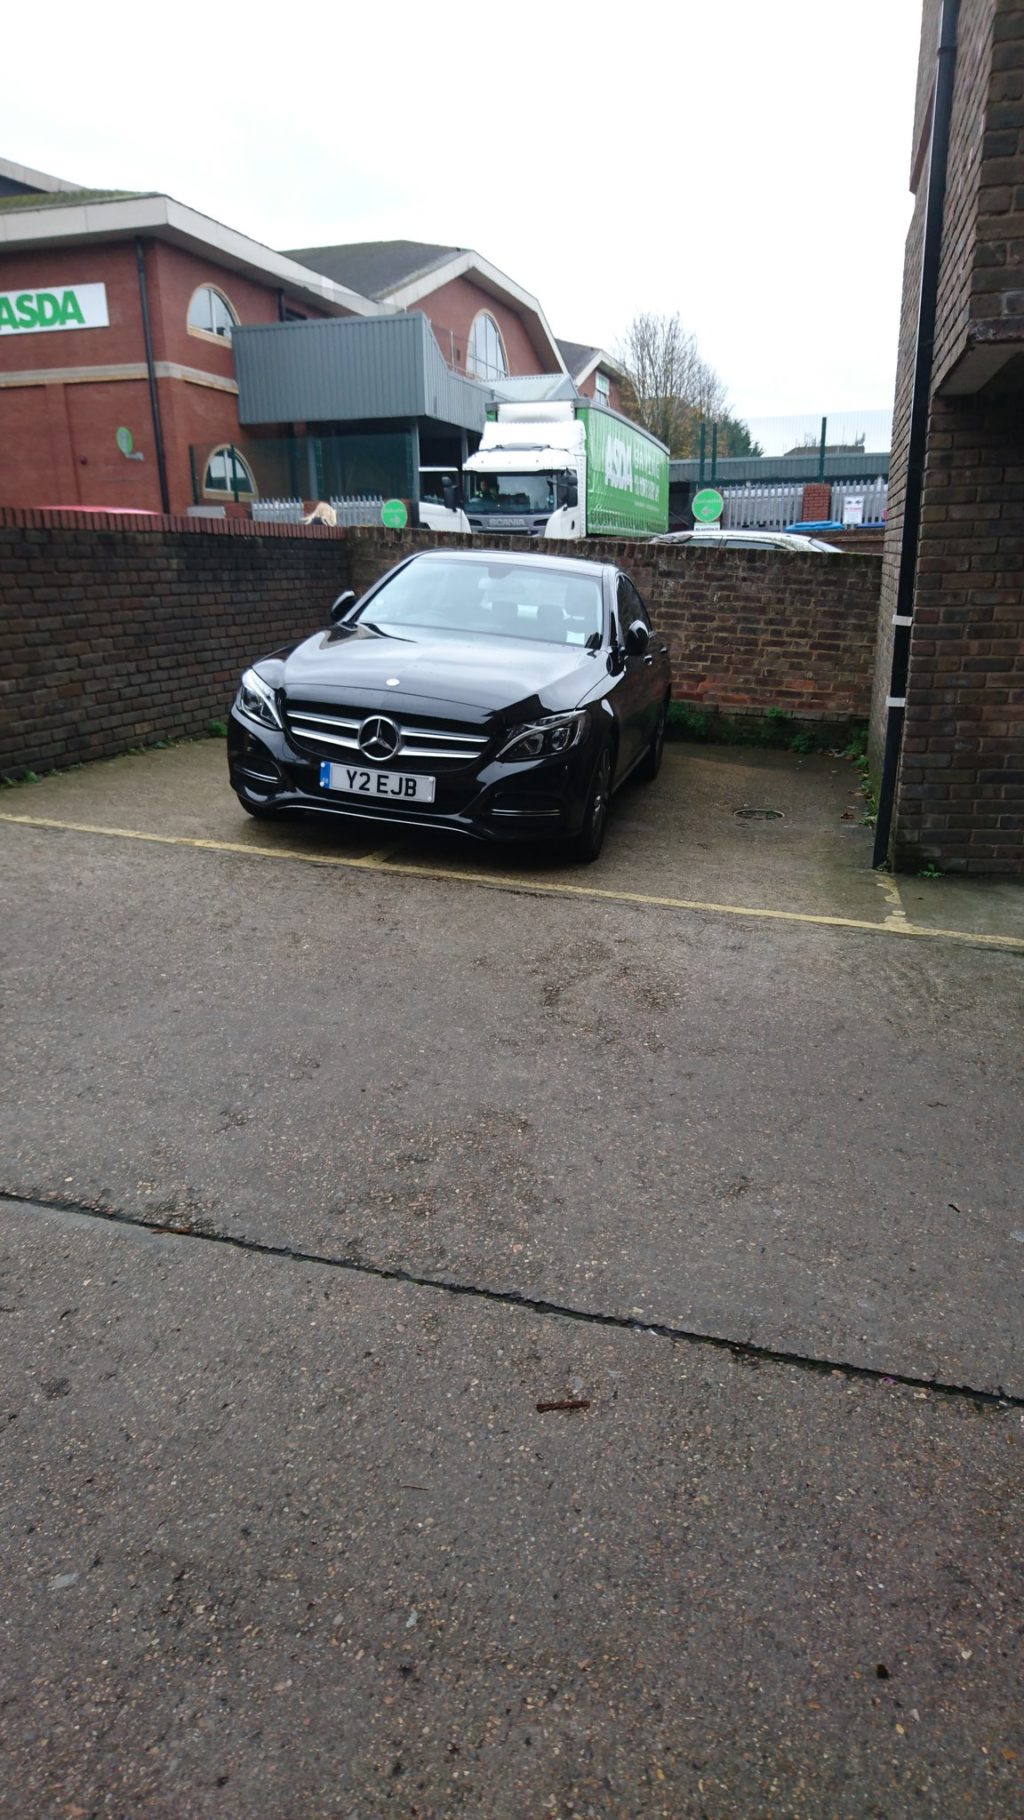 Y2 ELB is an Inconsiderate Parker